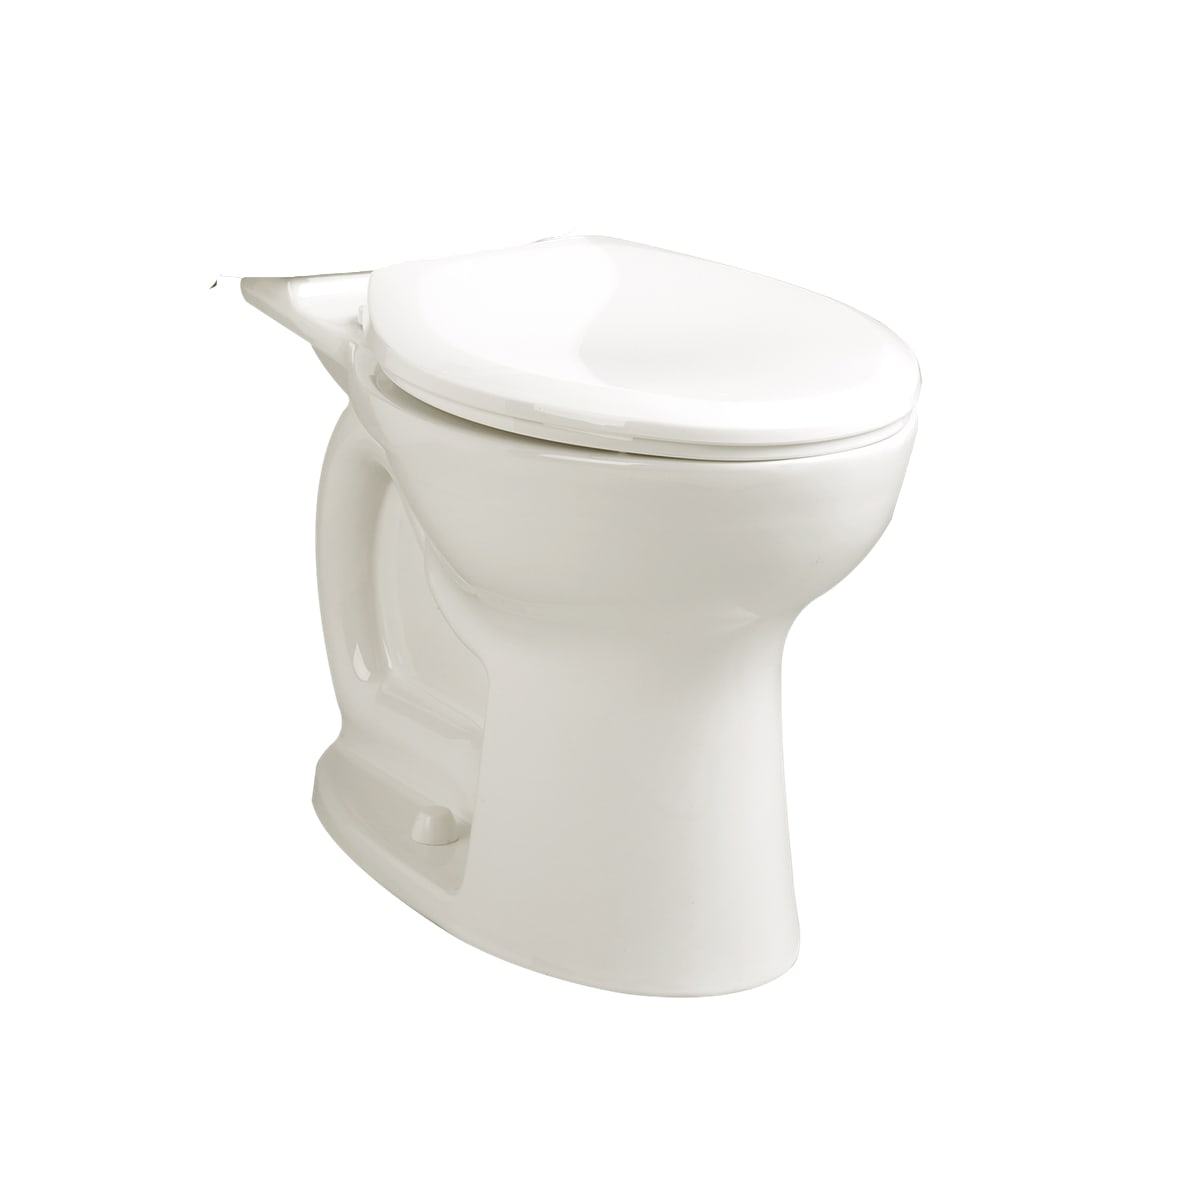 American Standard 3517b 101 020 White Cadet Pro Round Toilet Bowl Only With Everclean Surface Powerwash Rim And Right Height Bowl Faucet Com